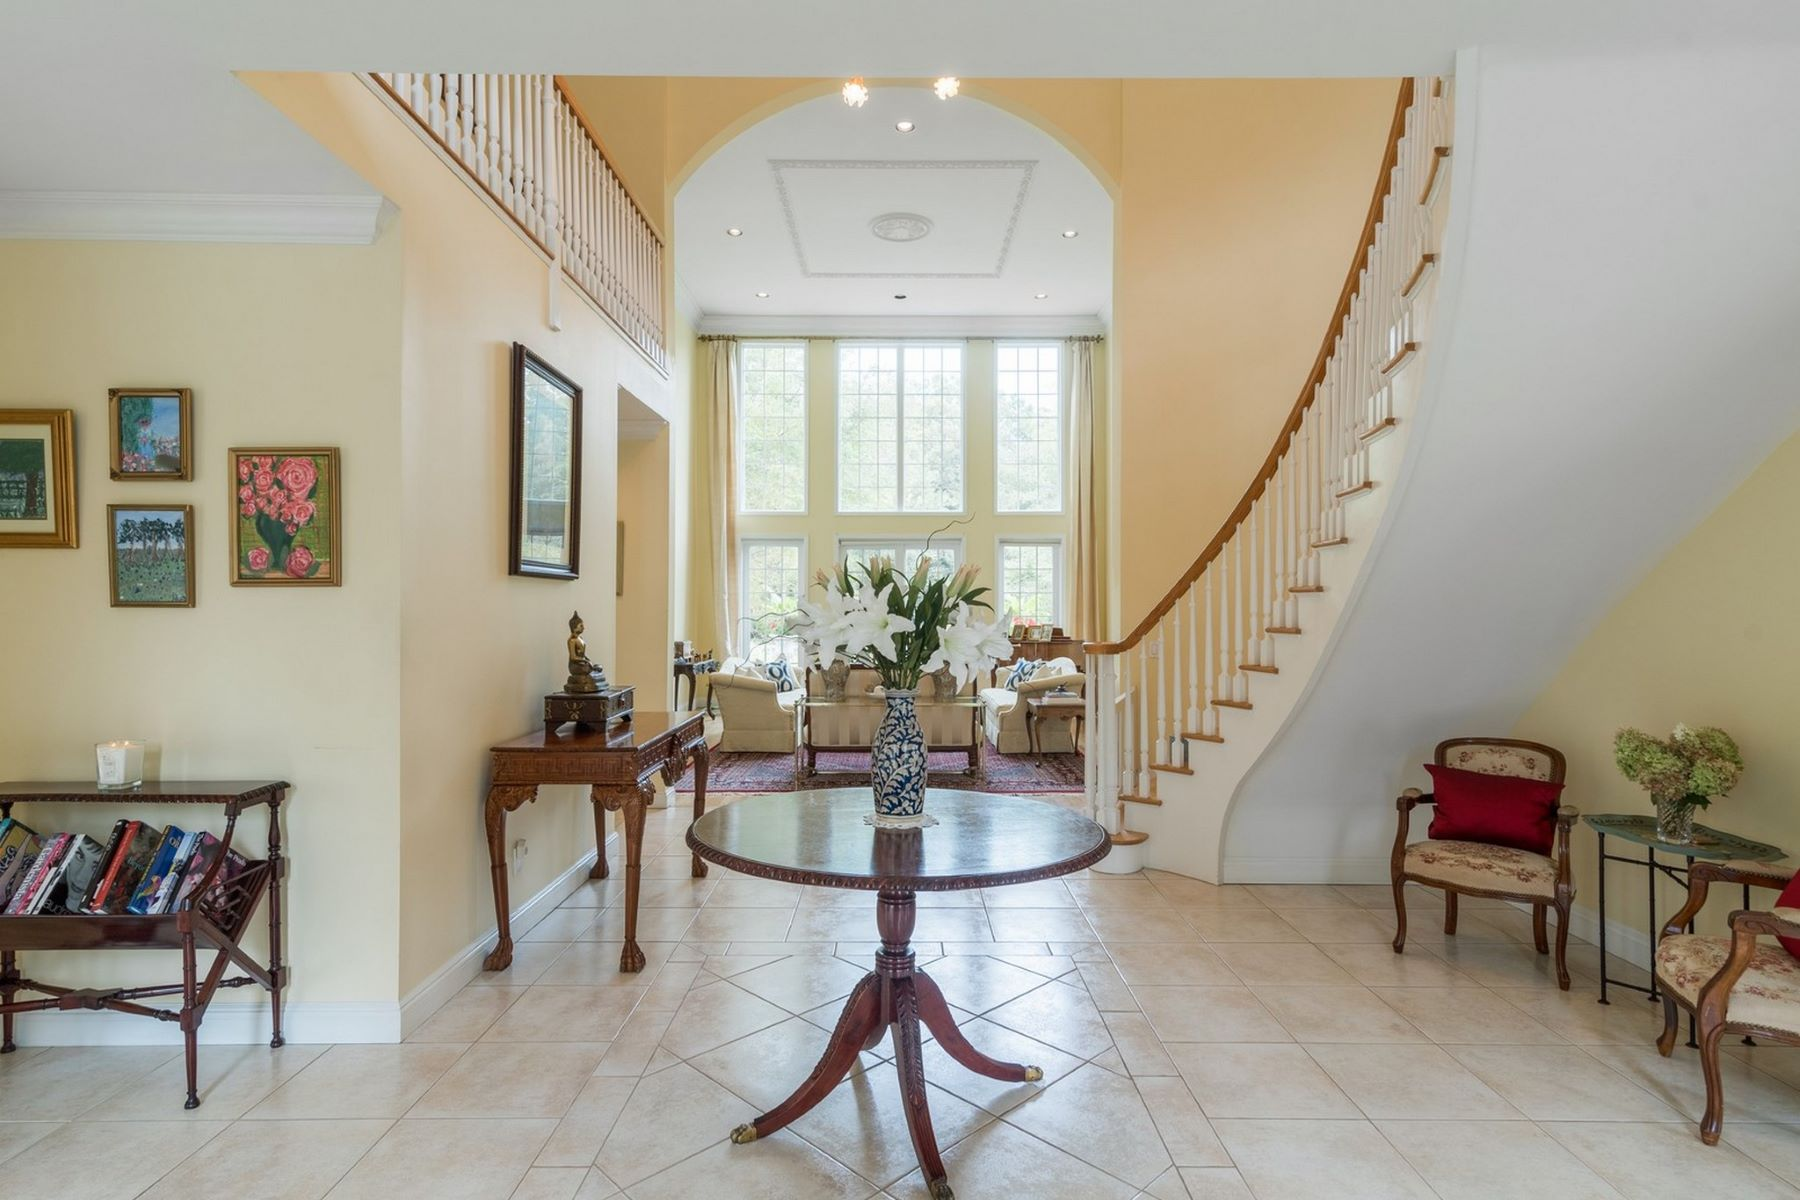 Single Family Homes for Sale at Muttontown 41 Windsor Drive Muttontown, New York 11753 United States